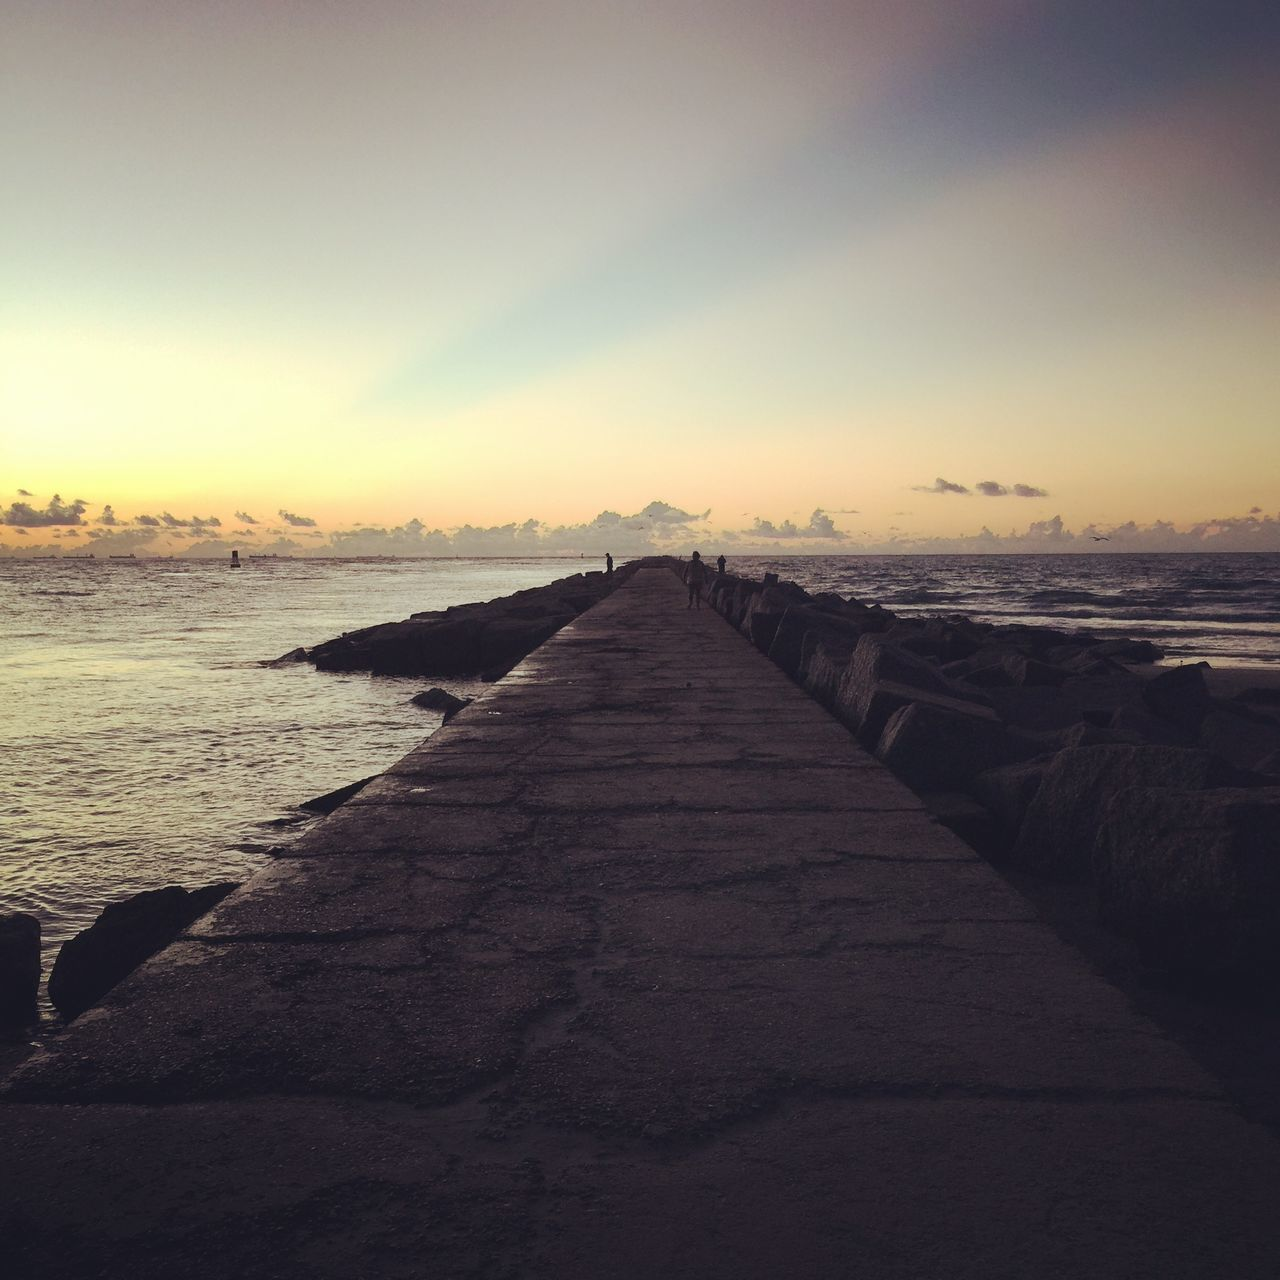 Pure joy Beach Horizon Over Water Jetty View No People Sea Sky Sunrise The Way Forward Tranquil Scene Tranquility Water